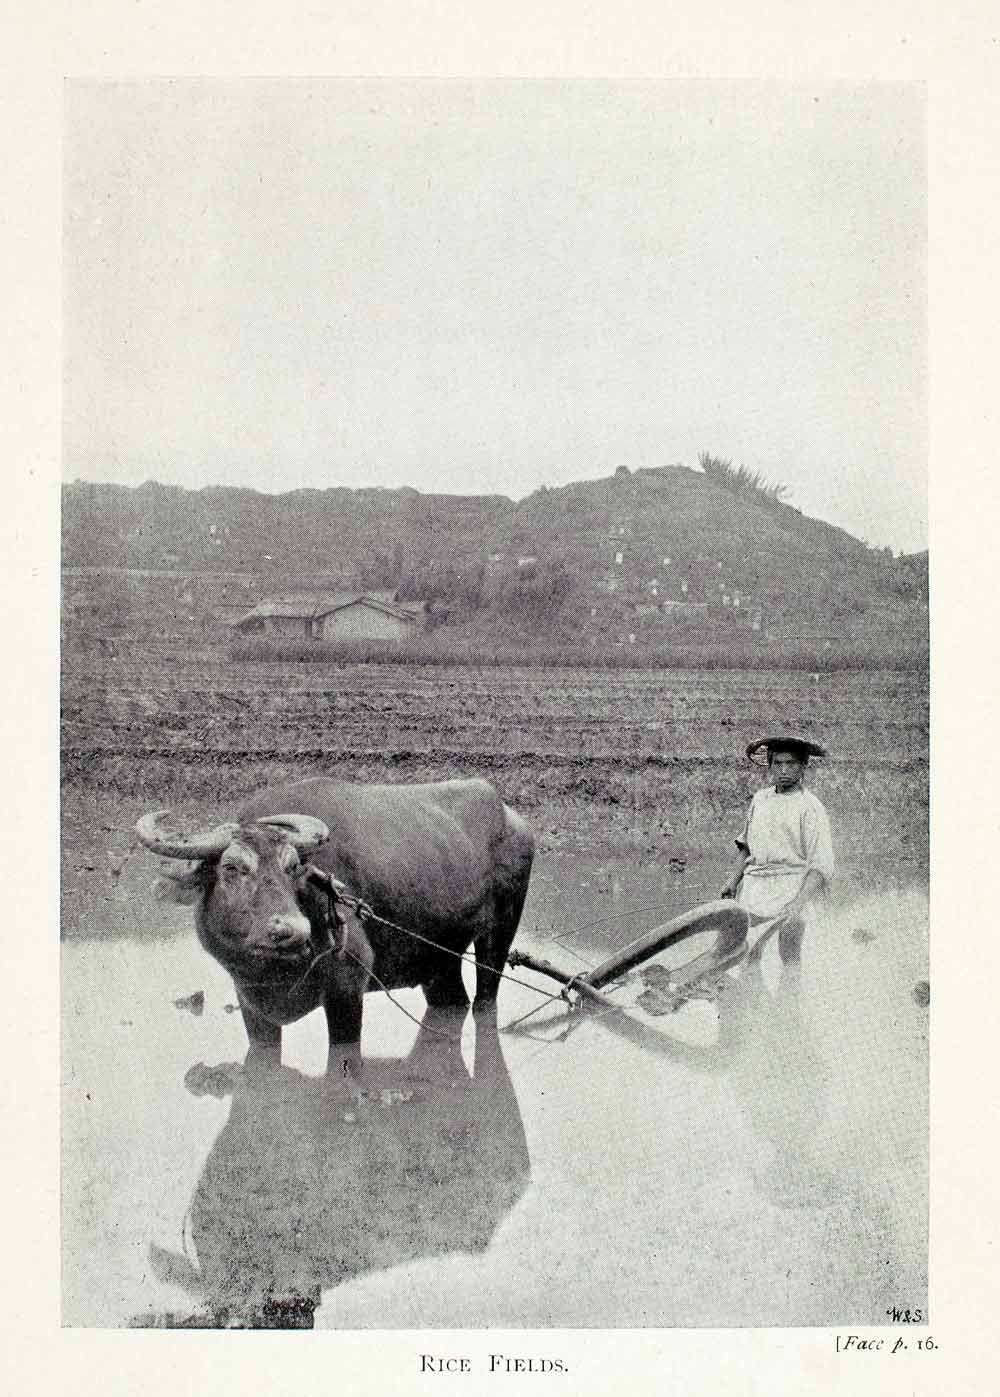 Rice Paddy Hat | ... Print Rice Fields Paddy Ox Agriculture Landscape China Plow Hat